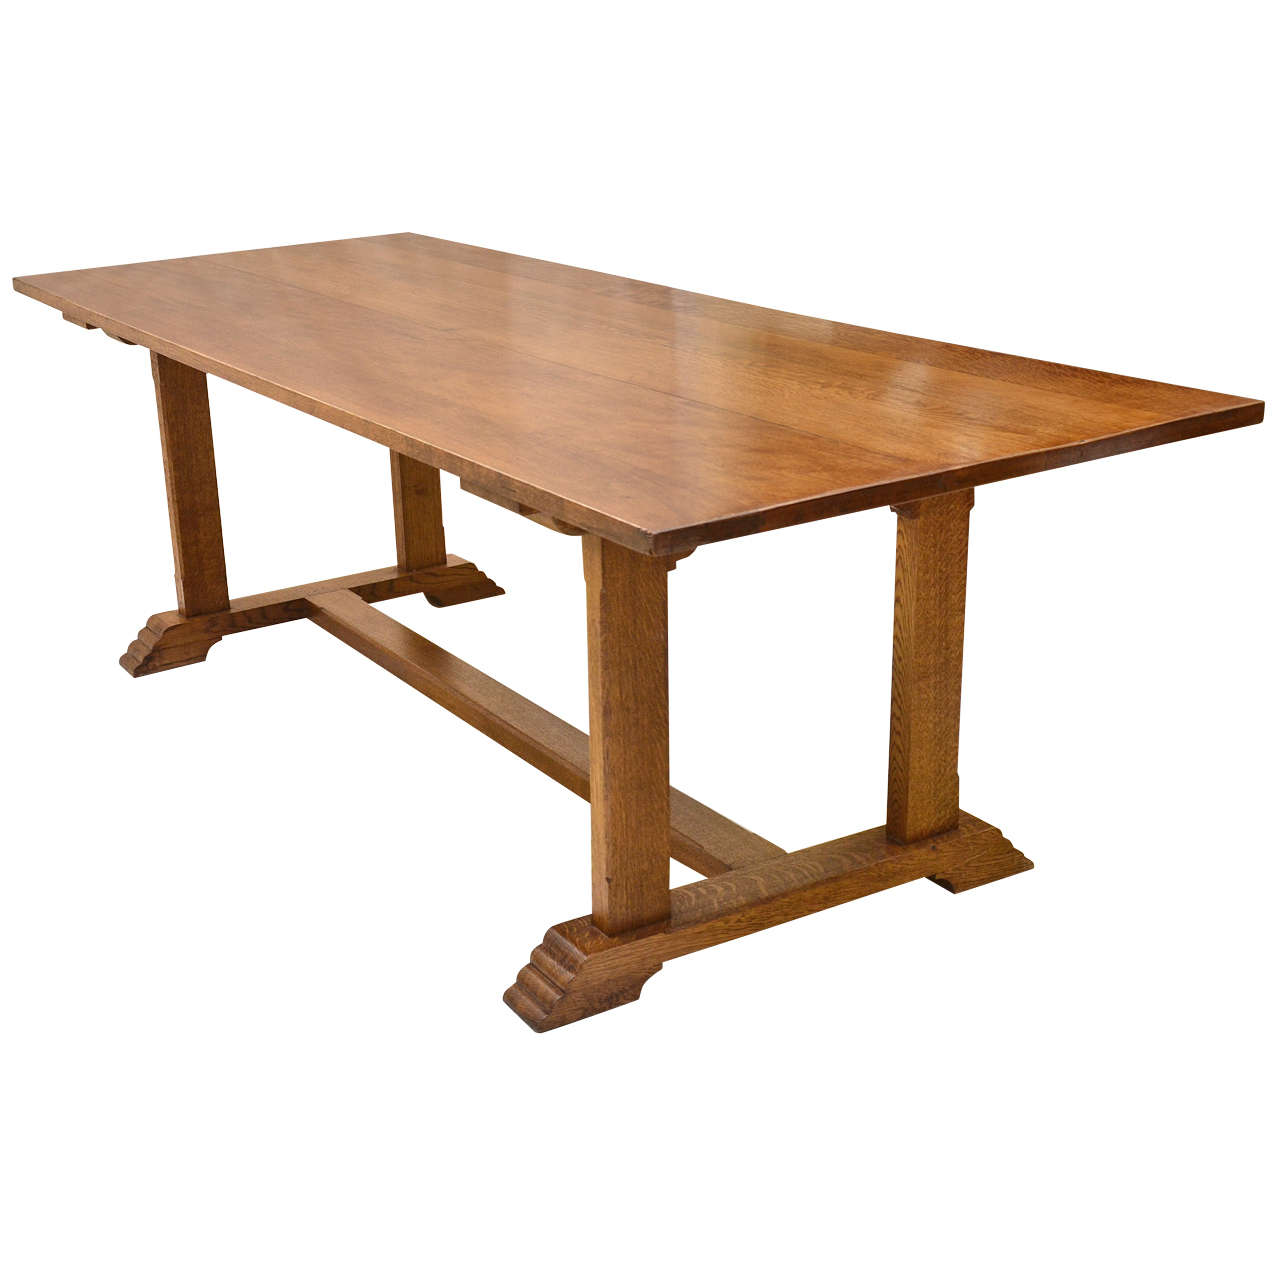 Gordon Russell Coffee Table Image Collections